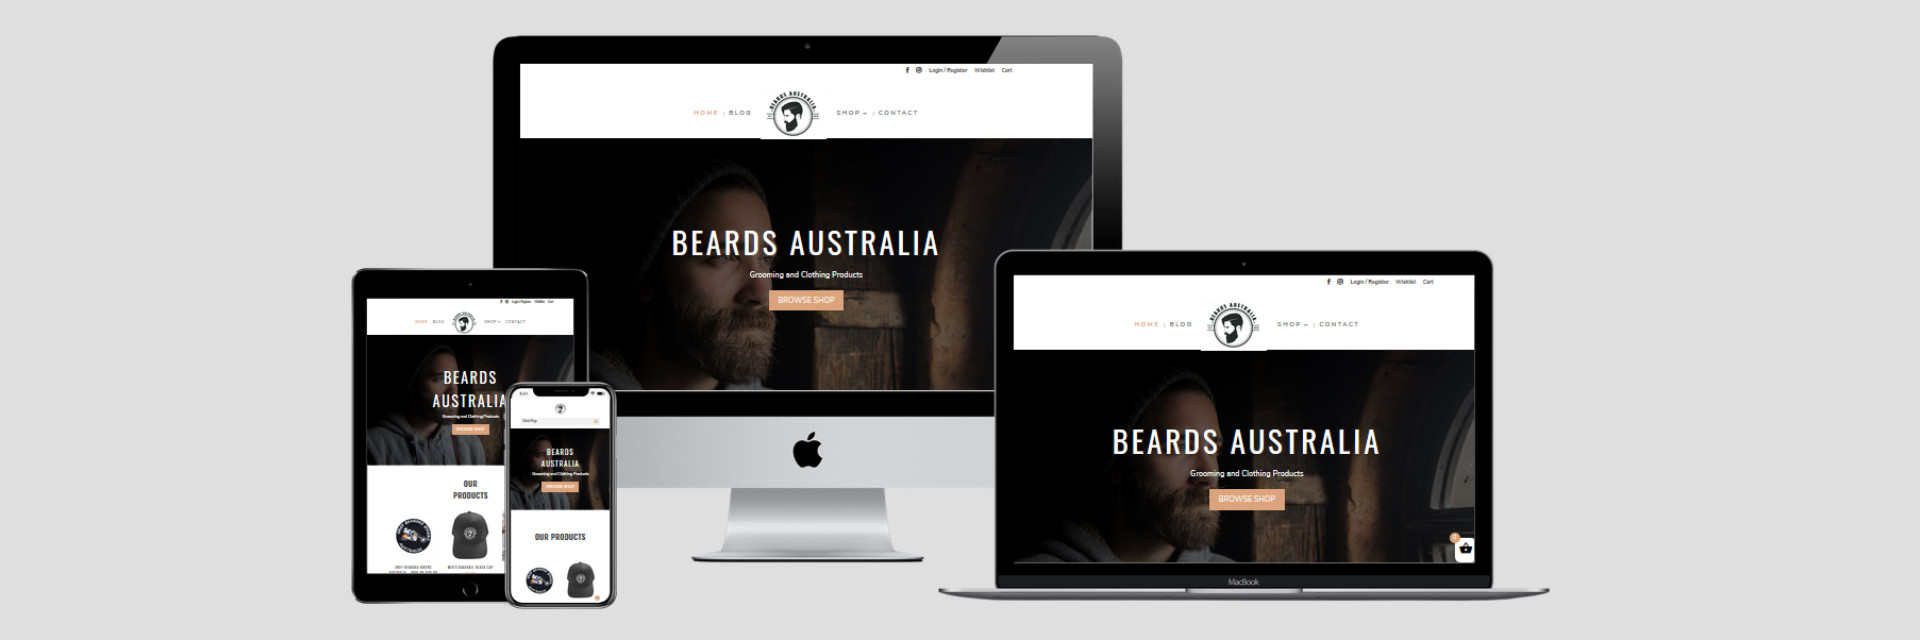 Beards Australia - New Website Design